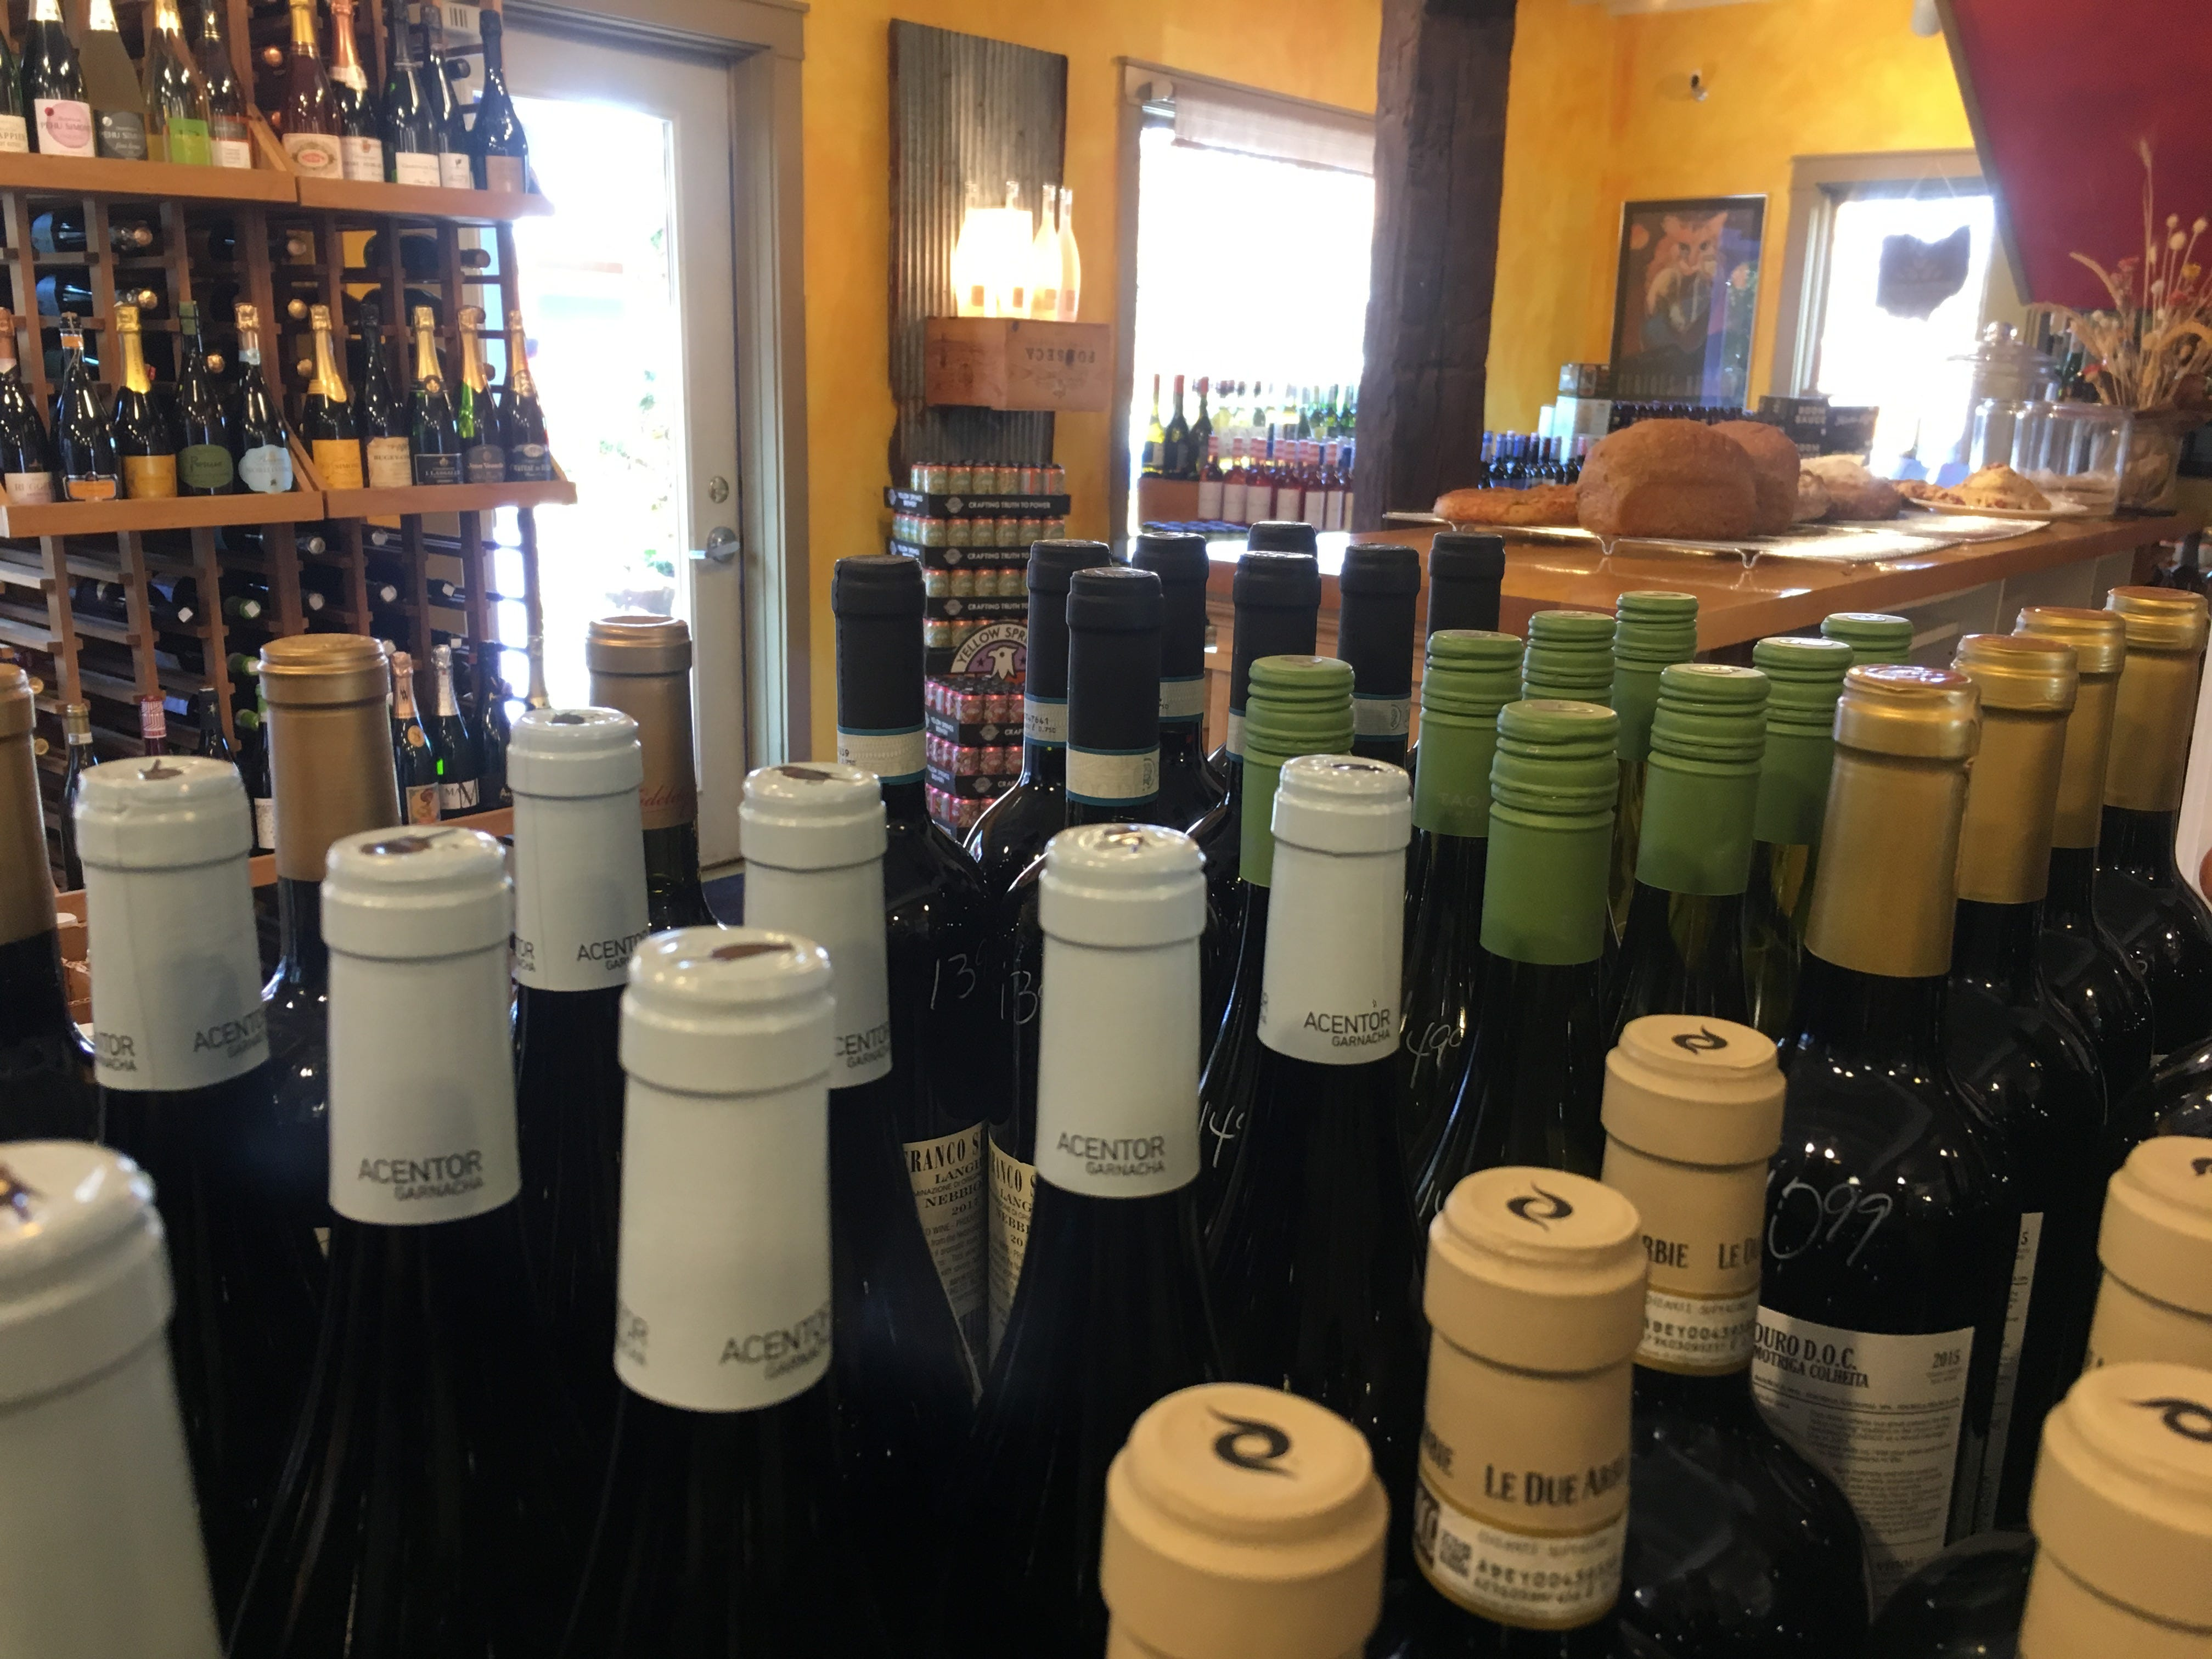 Grab a bottle or taste some wine at The Winds Wine Cellar.